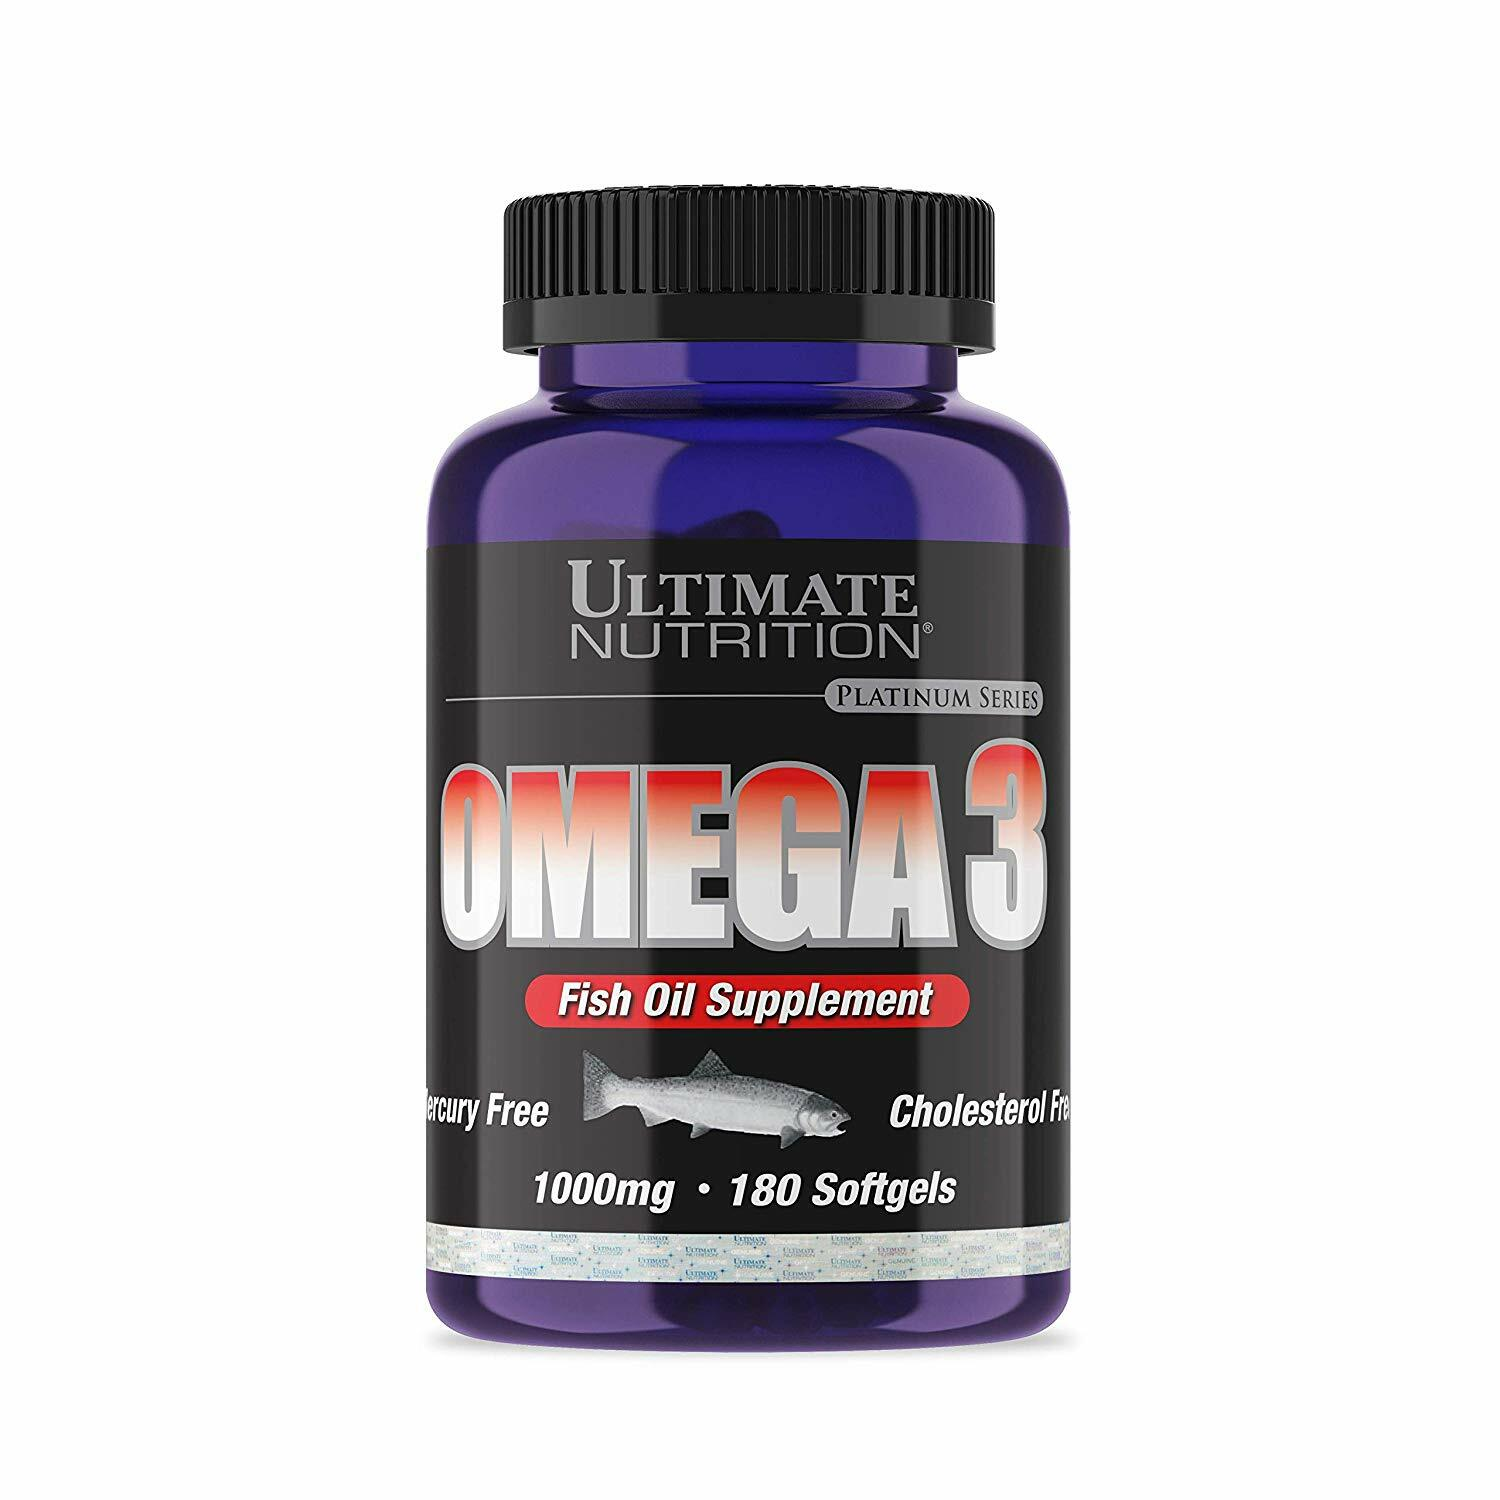 Ultimate Nutrition Omega 3 Fish Oil Softgels - 180 Softgels 99071006820